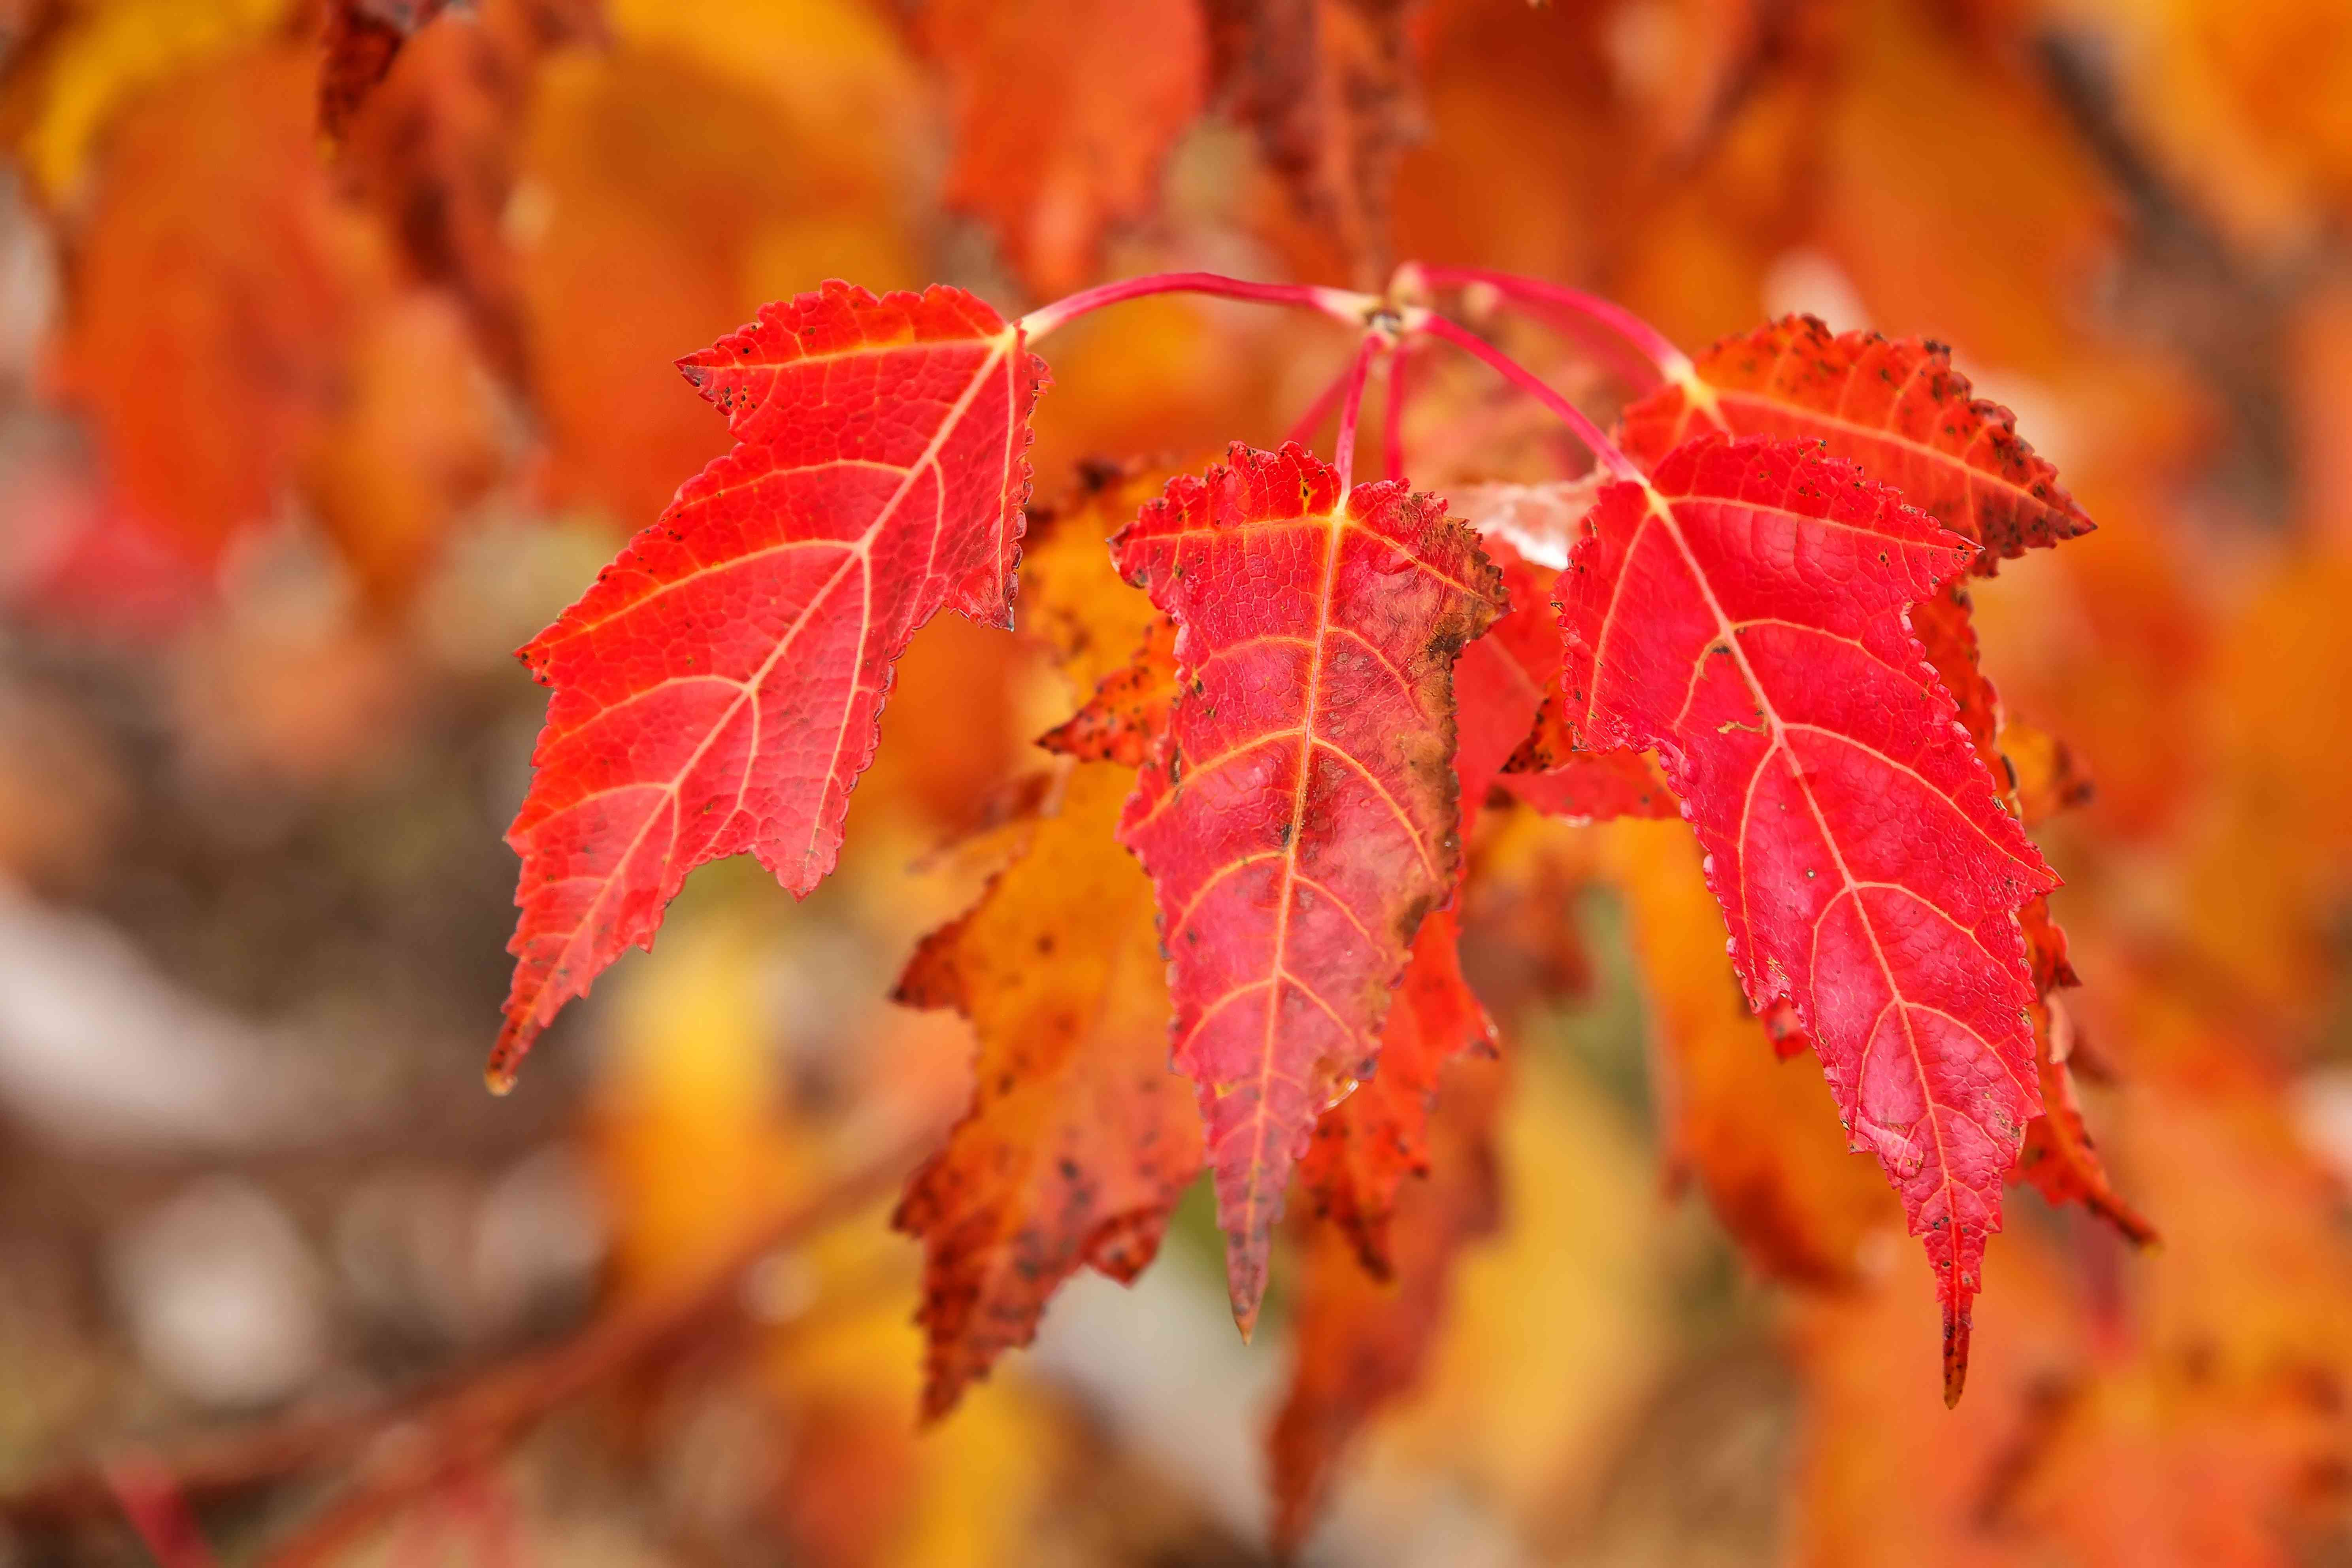 Close-up of red amur maple tree leaves